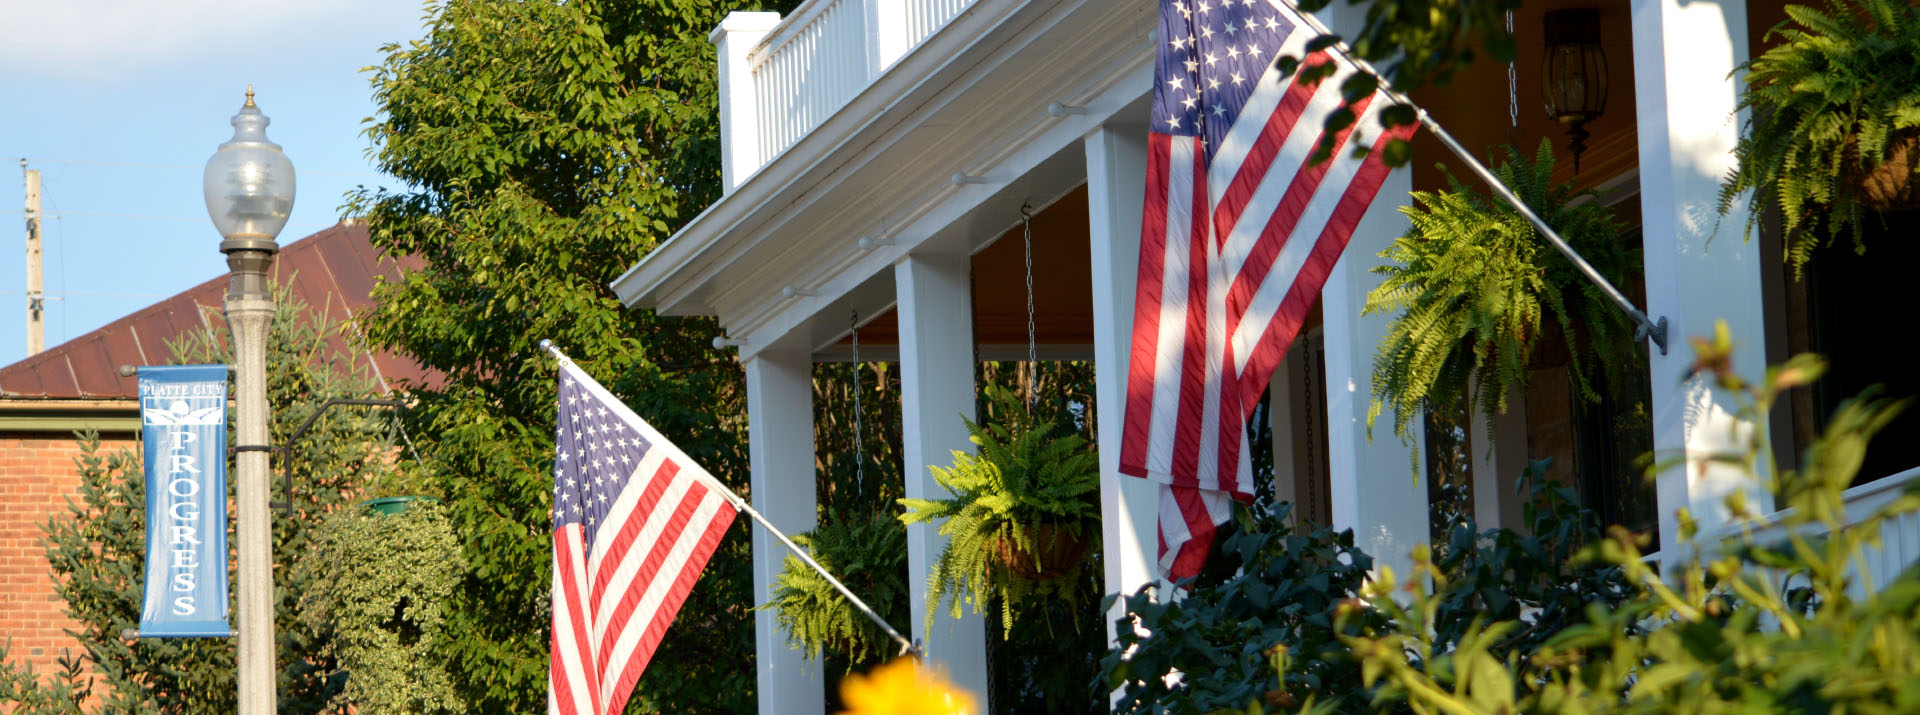 American flags in front of porch pillars